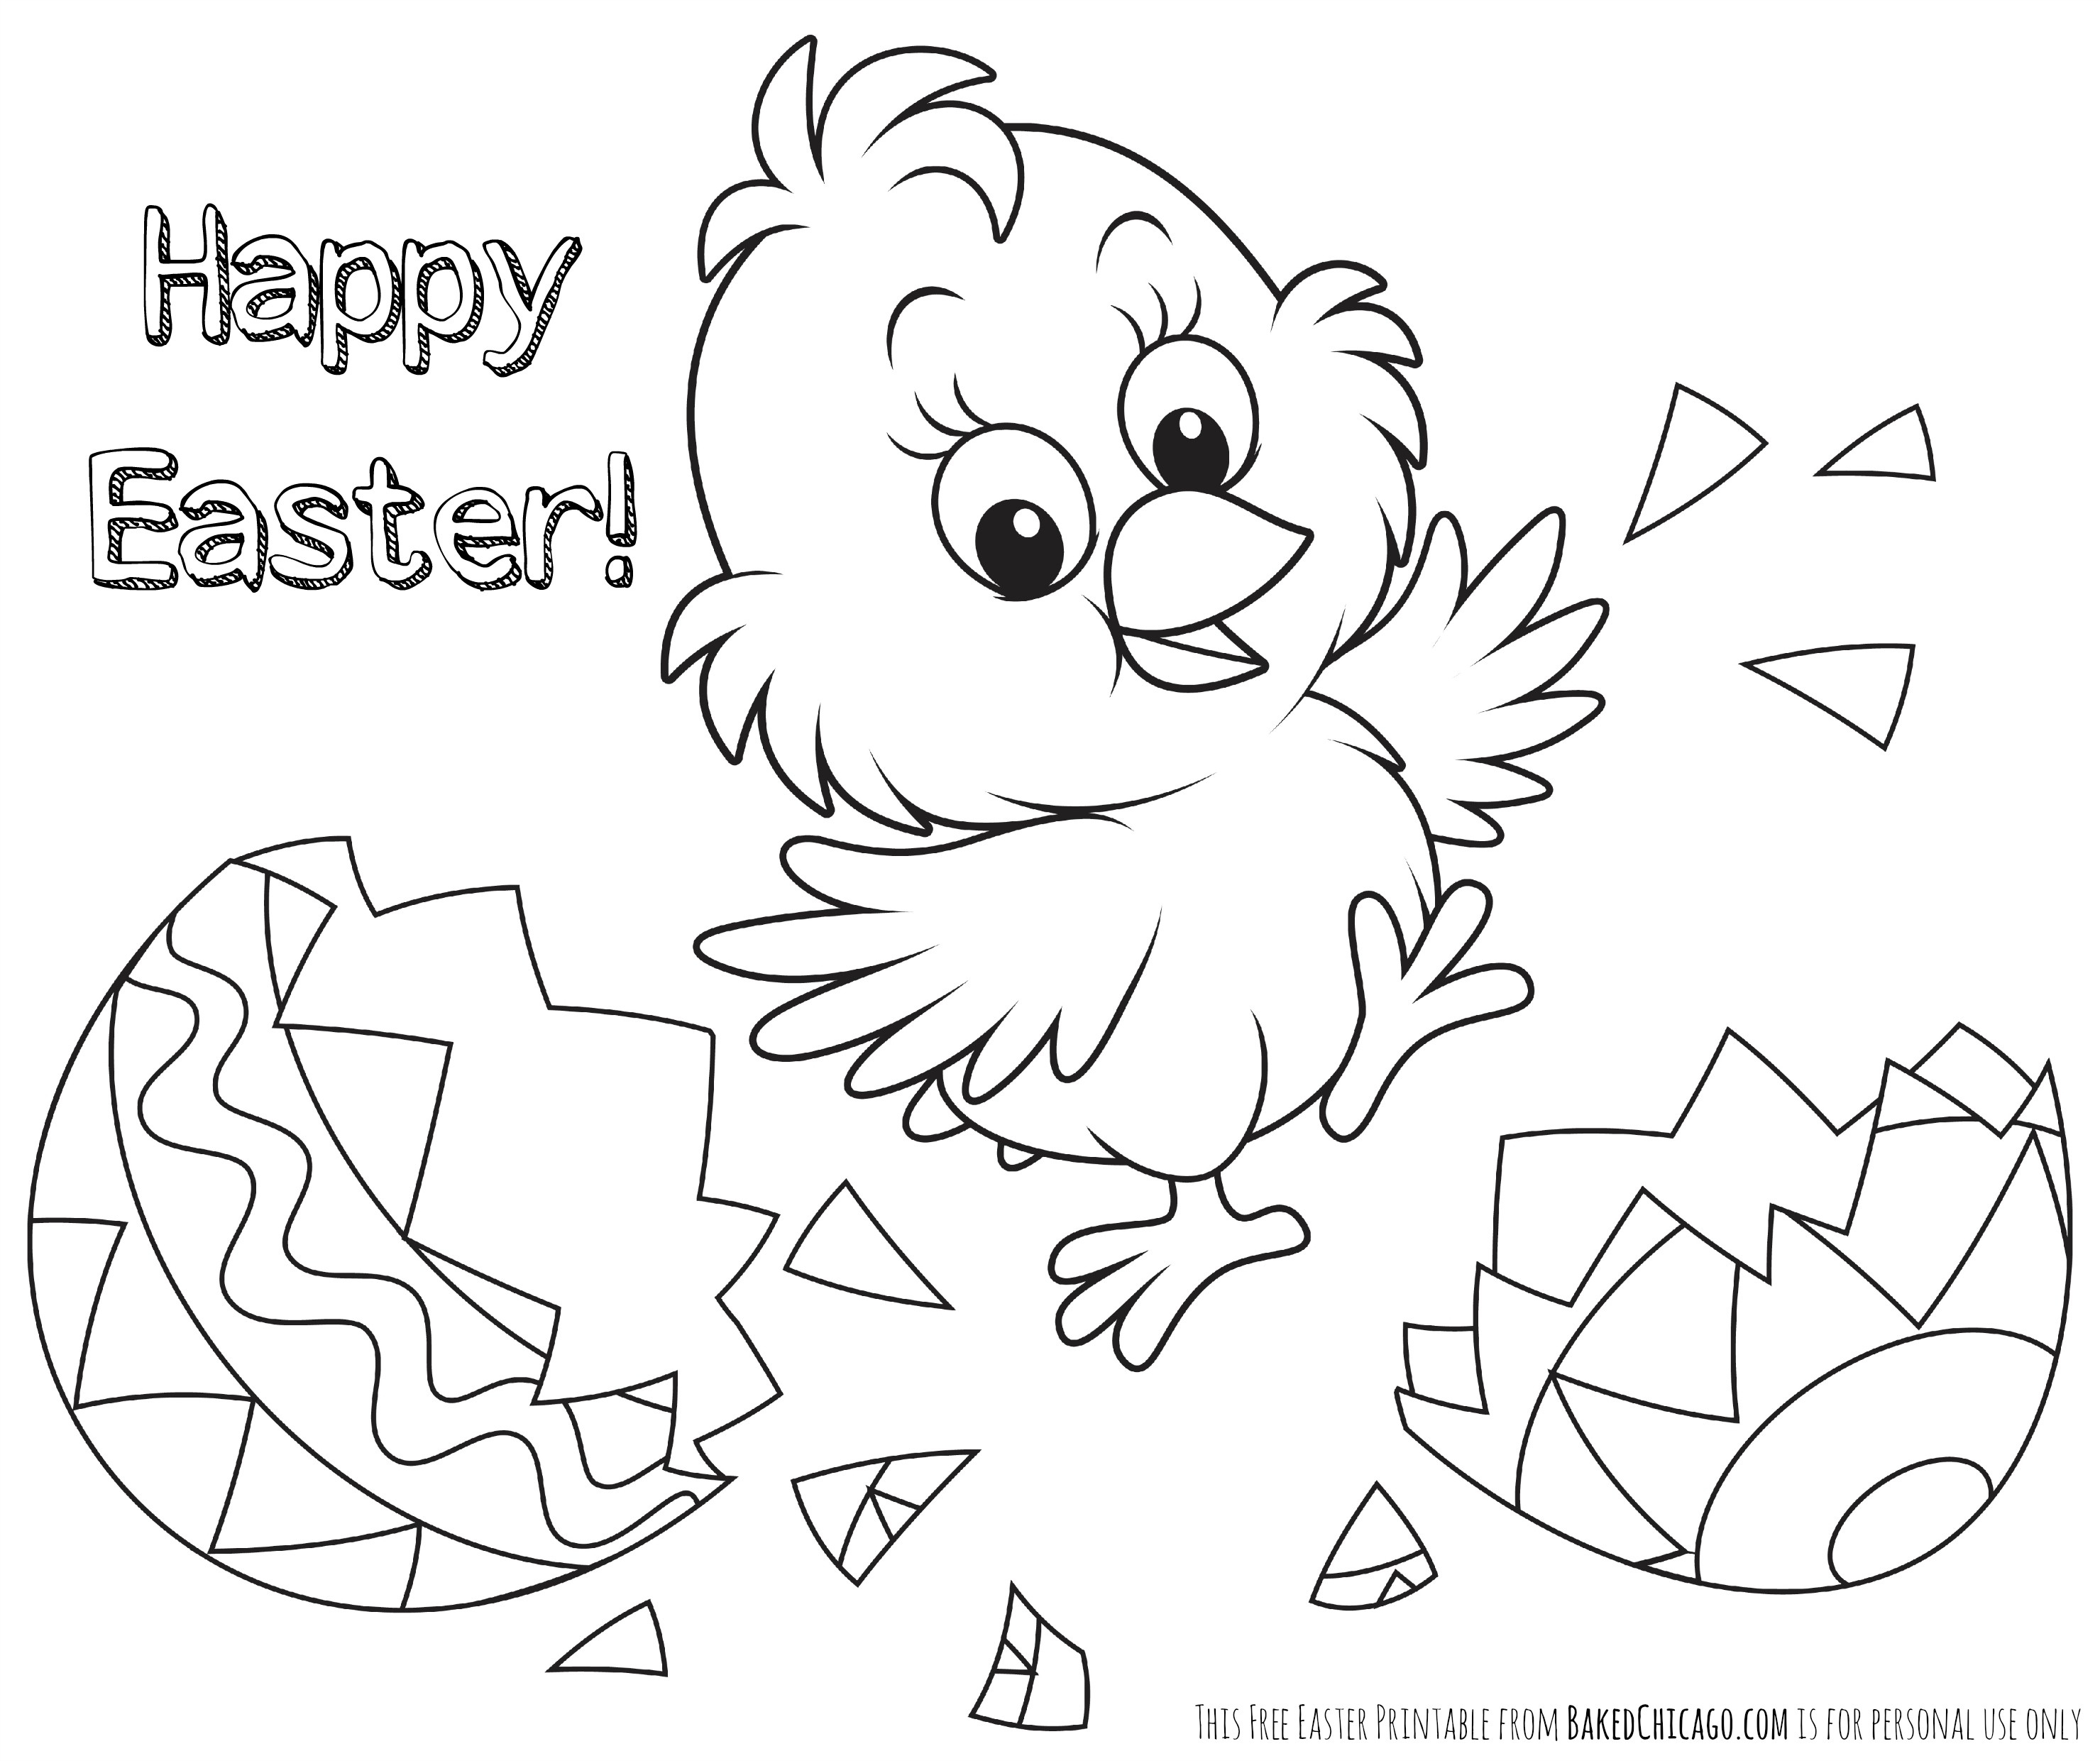 Coloring Pages : Free Easter Coloringes For Kidsfree To Print - Free Easter Color Pages Printable